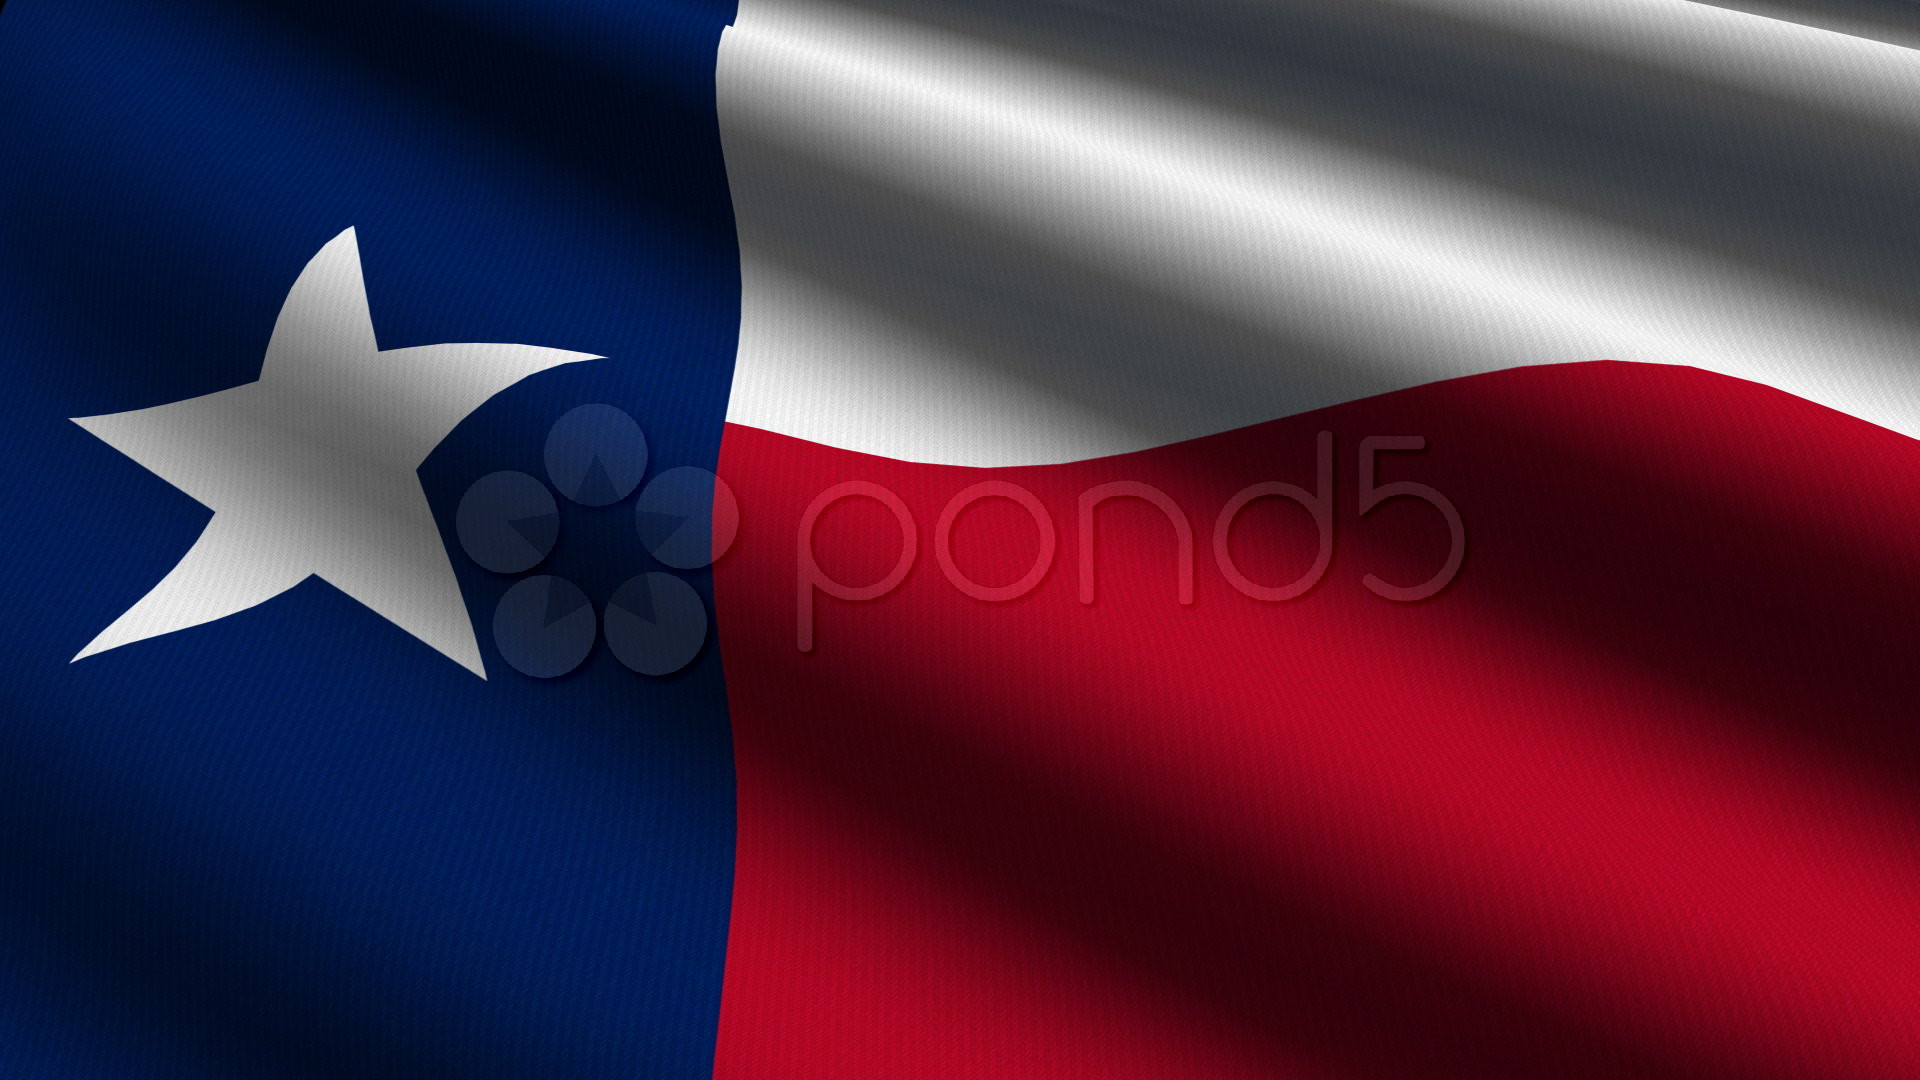 1920x1080 Texas Close Up Flag - Hd Loop Stock Video 630683 | HD Stock Footage